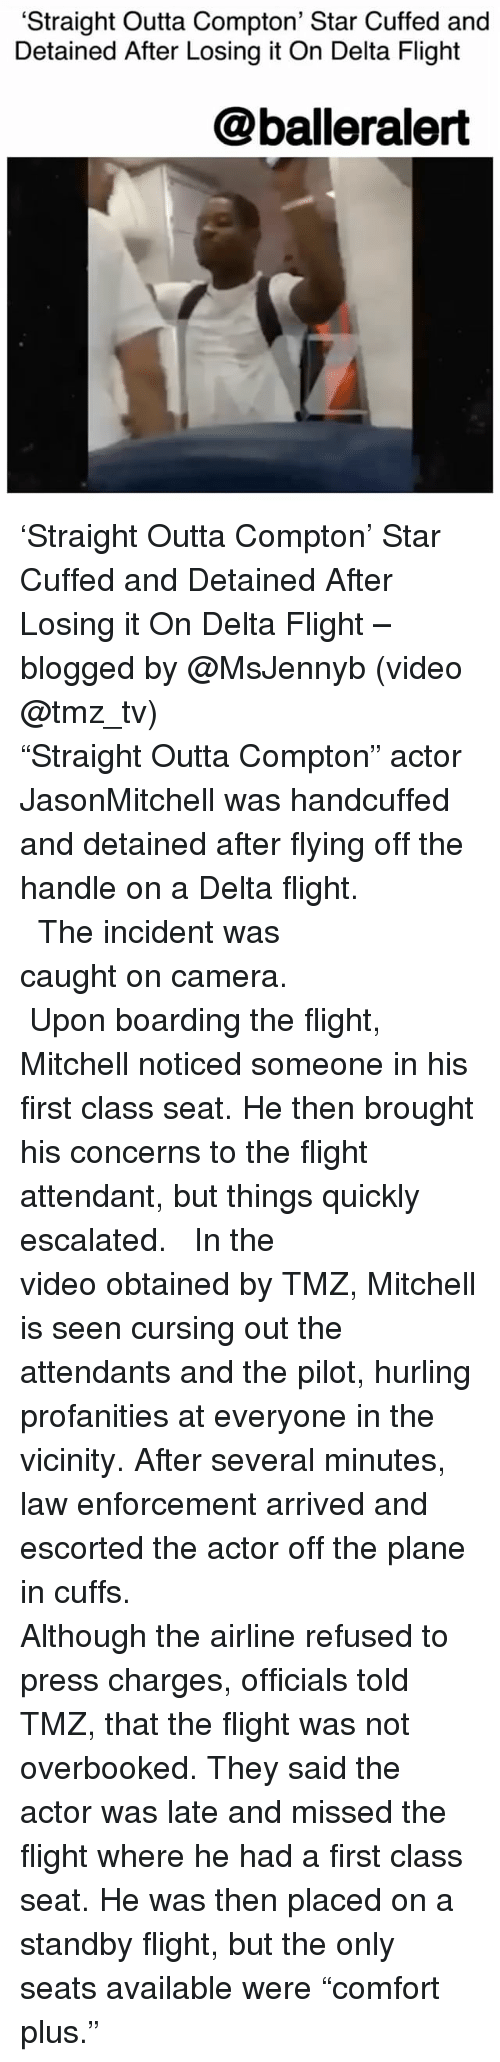 """Straight Outta Compton: 'Straight Outta Compton' Star Cuffed and  Detained After Losing it On Delta Flight  @balleralert 'Straight Outta Compton' Star Cuffed and Detained After Losing it On Delta Flight – blogged by @MsJennyb (video @tmz_tv) ⠀⠀⠀⠀⠀⠀⠀ ⠀⠀⠀⠀⠀⠀⠀ ⠀⠀⠀⠀⠀⠀⠀ """"Straight Outta Compton"""" actor JasonMitchell was handcuffed and detained after flying off the handle on a Delta flight. ⠀⠀⠀⠀⠀⠀⠀ ⠀⠀⠀⠀⠀⠀⠀ ⠀⠀⠀⠀⠀⠀⠀ The incident was caught on camera. ⠀⠀⠀⠀⠀⠀⠀ ⠀⠀⠀⠀⠀⠀⠀ ⠀⠀⠀⠀⠀⠀⠀ Upon boarding the flight, Mitchell noticed someone in his first class seat. He then brought his concerns to the flight attendant, but things quickly escalated. ⠀⠀⠀⠀⠀⠀⠀ ⠀⠀⠀⠀⠀⠀⠀ In the video obtained by TMZ, Mitchell is seen cursing out the attendants and the pilot, hurling profanities at everyone in the vicinity. After several minutes, law enforcement arrived and escorted the actor off the plane in cuffs. ⠀⠀⠀⠀⠀⠀⠀ ⠀⠀⠀⠀⠀⠀⠀ ⠀⠀⠀⠀⠀⠀⠀ Although the airline refused to press charges, officials told TMZ, that the flight was not overbooked. They said the actor was late and missed the flight where he had a first class seat. He was then placed on a standby flight, but the only seats available were """"comfort plus."""""""